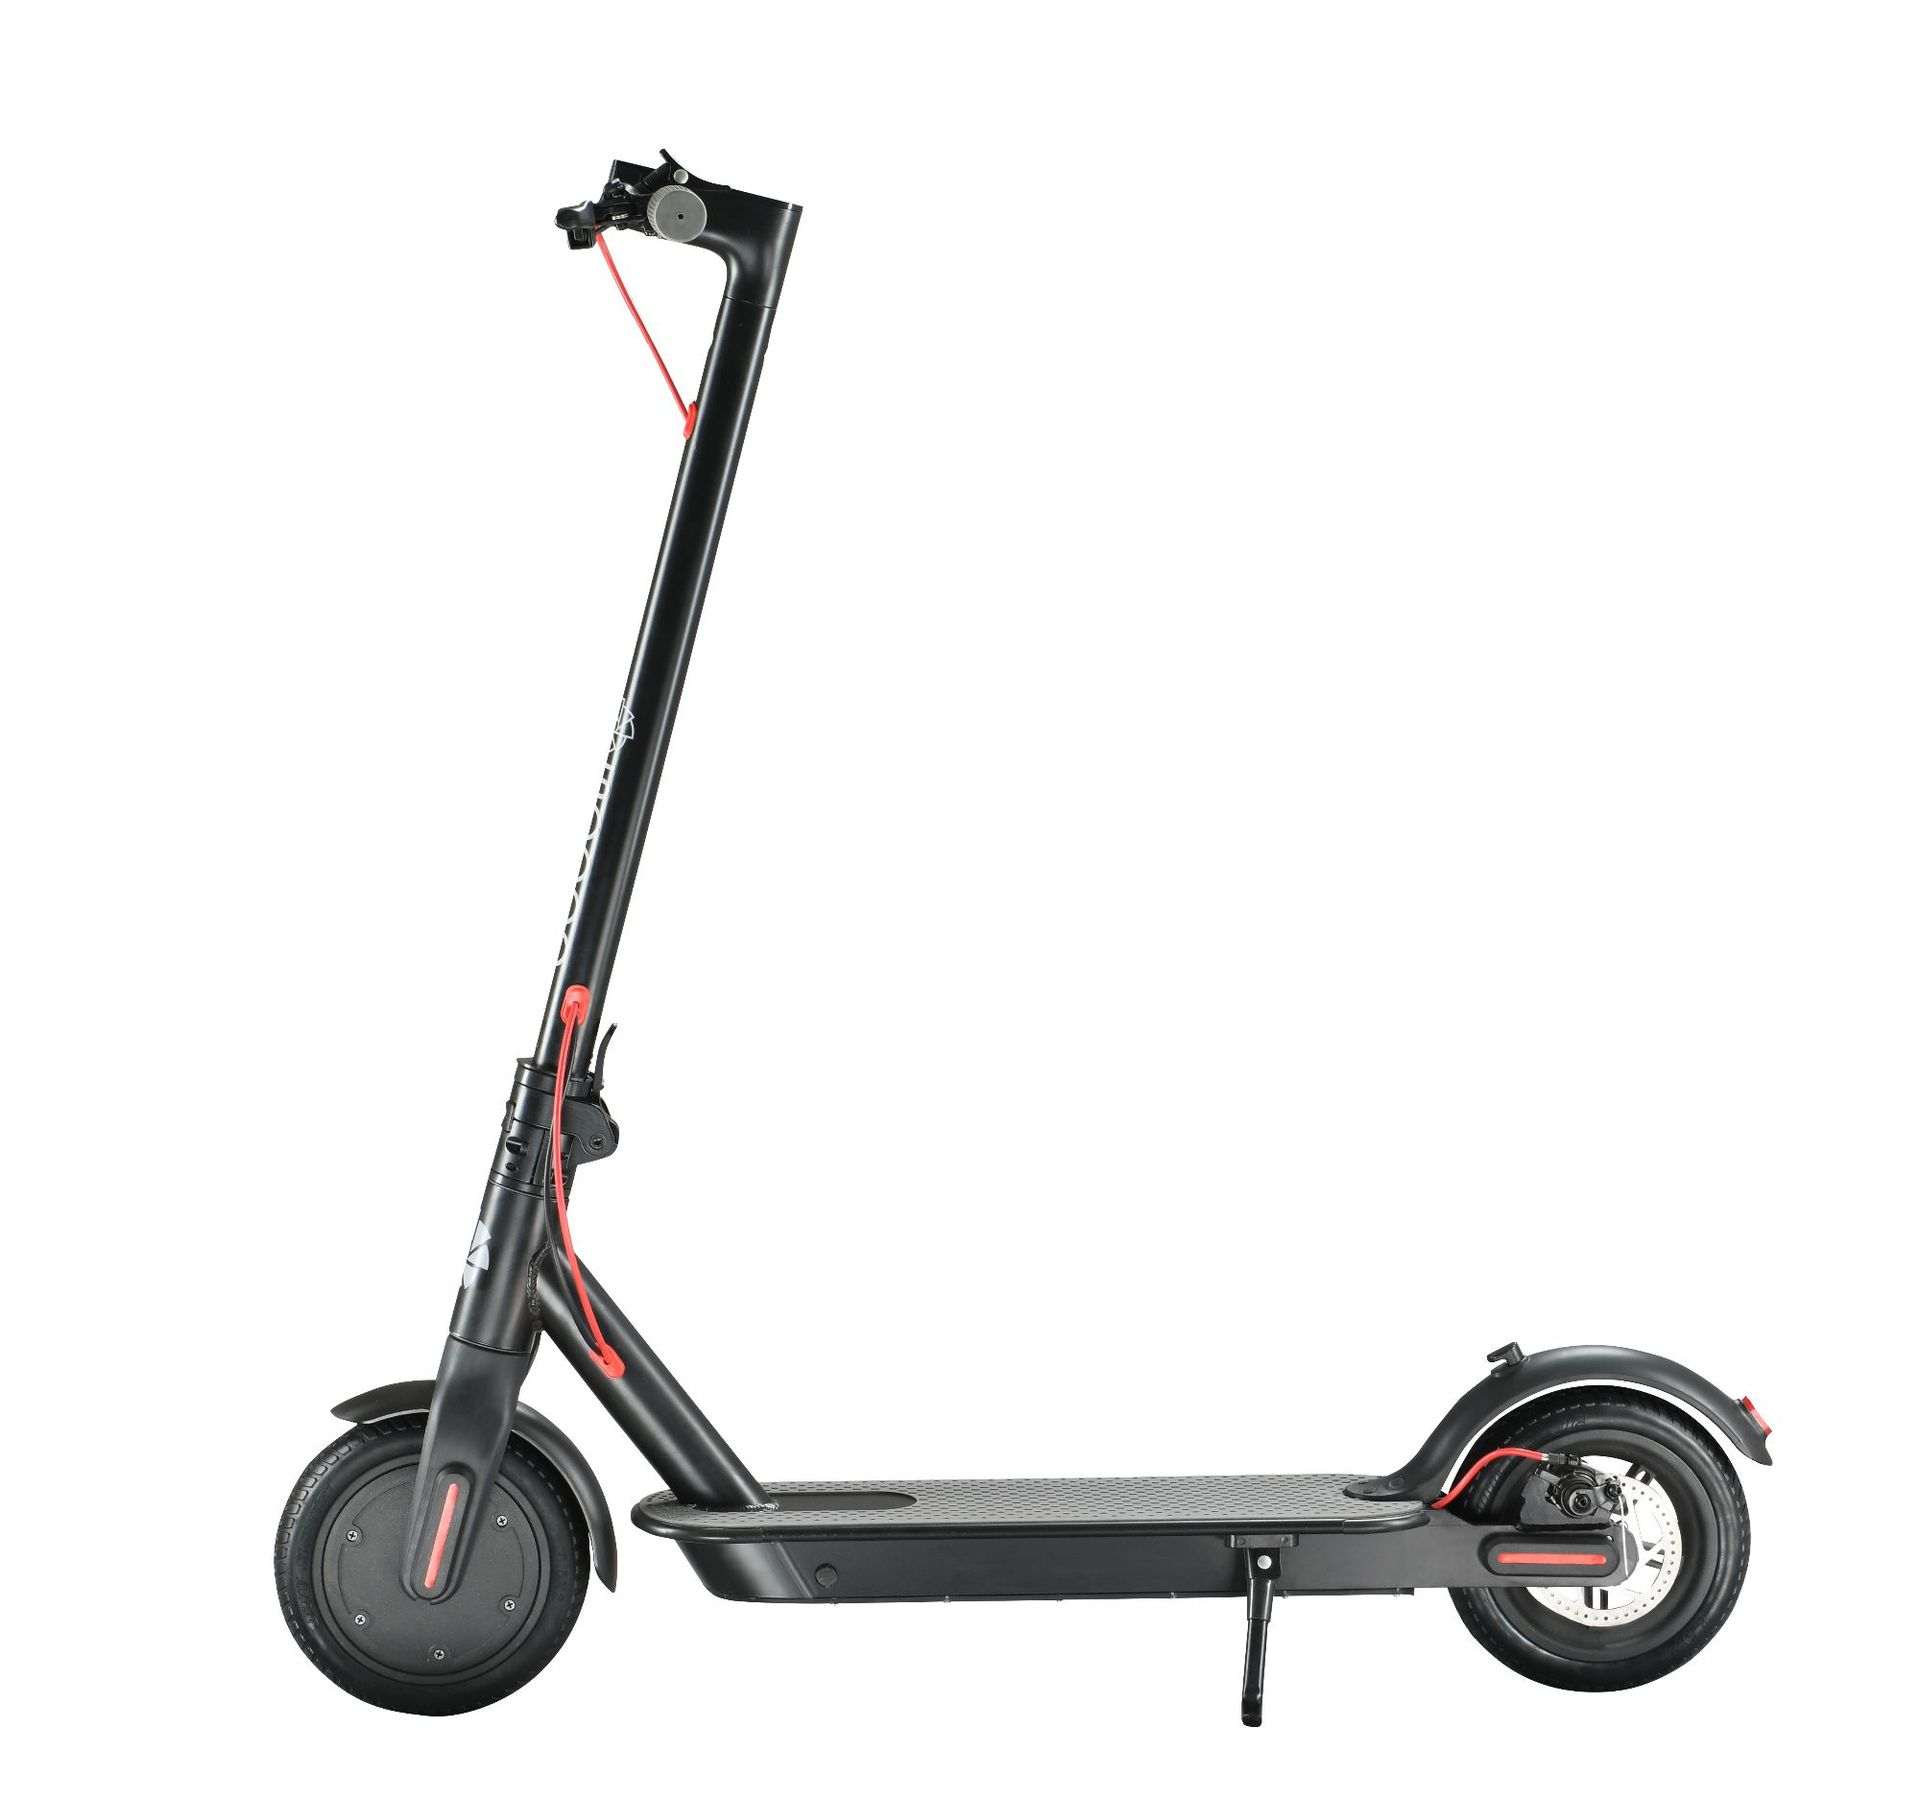 39029 - E-scooter offer Europe